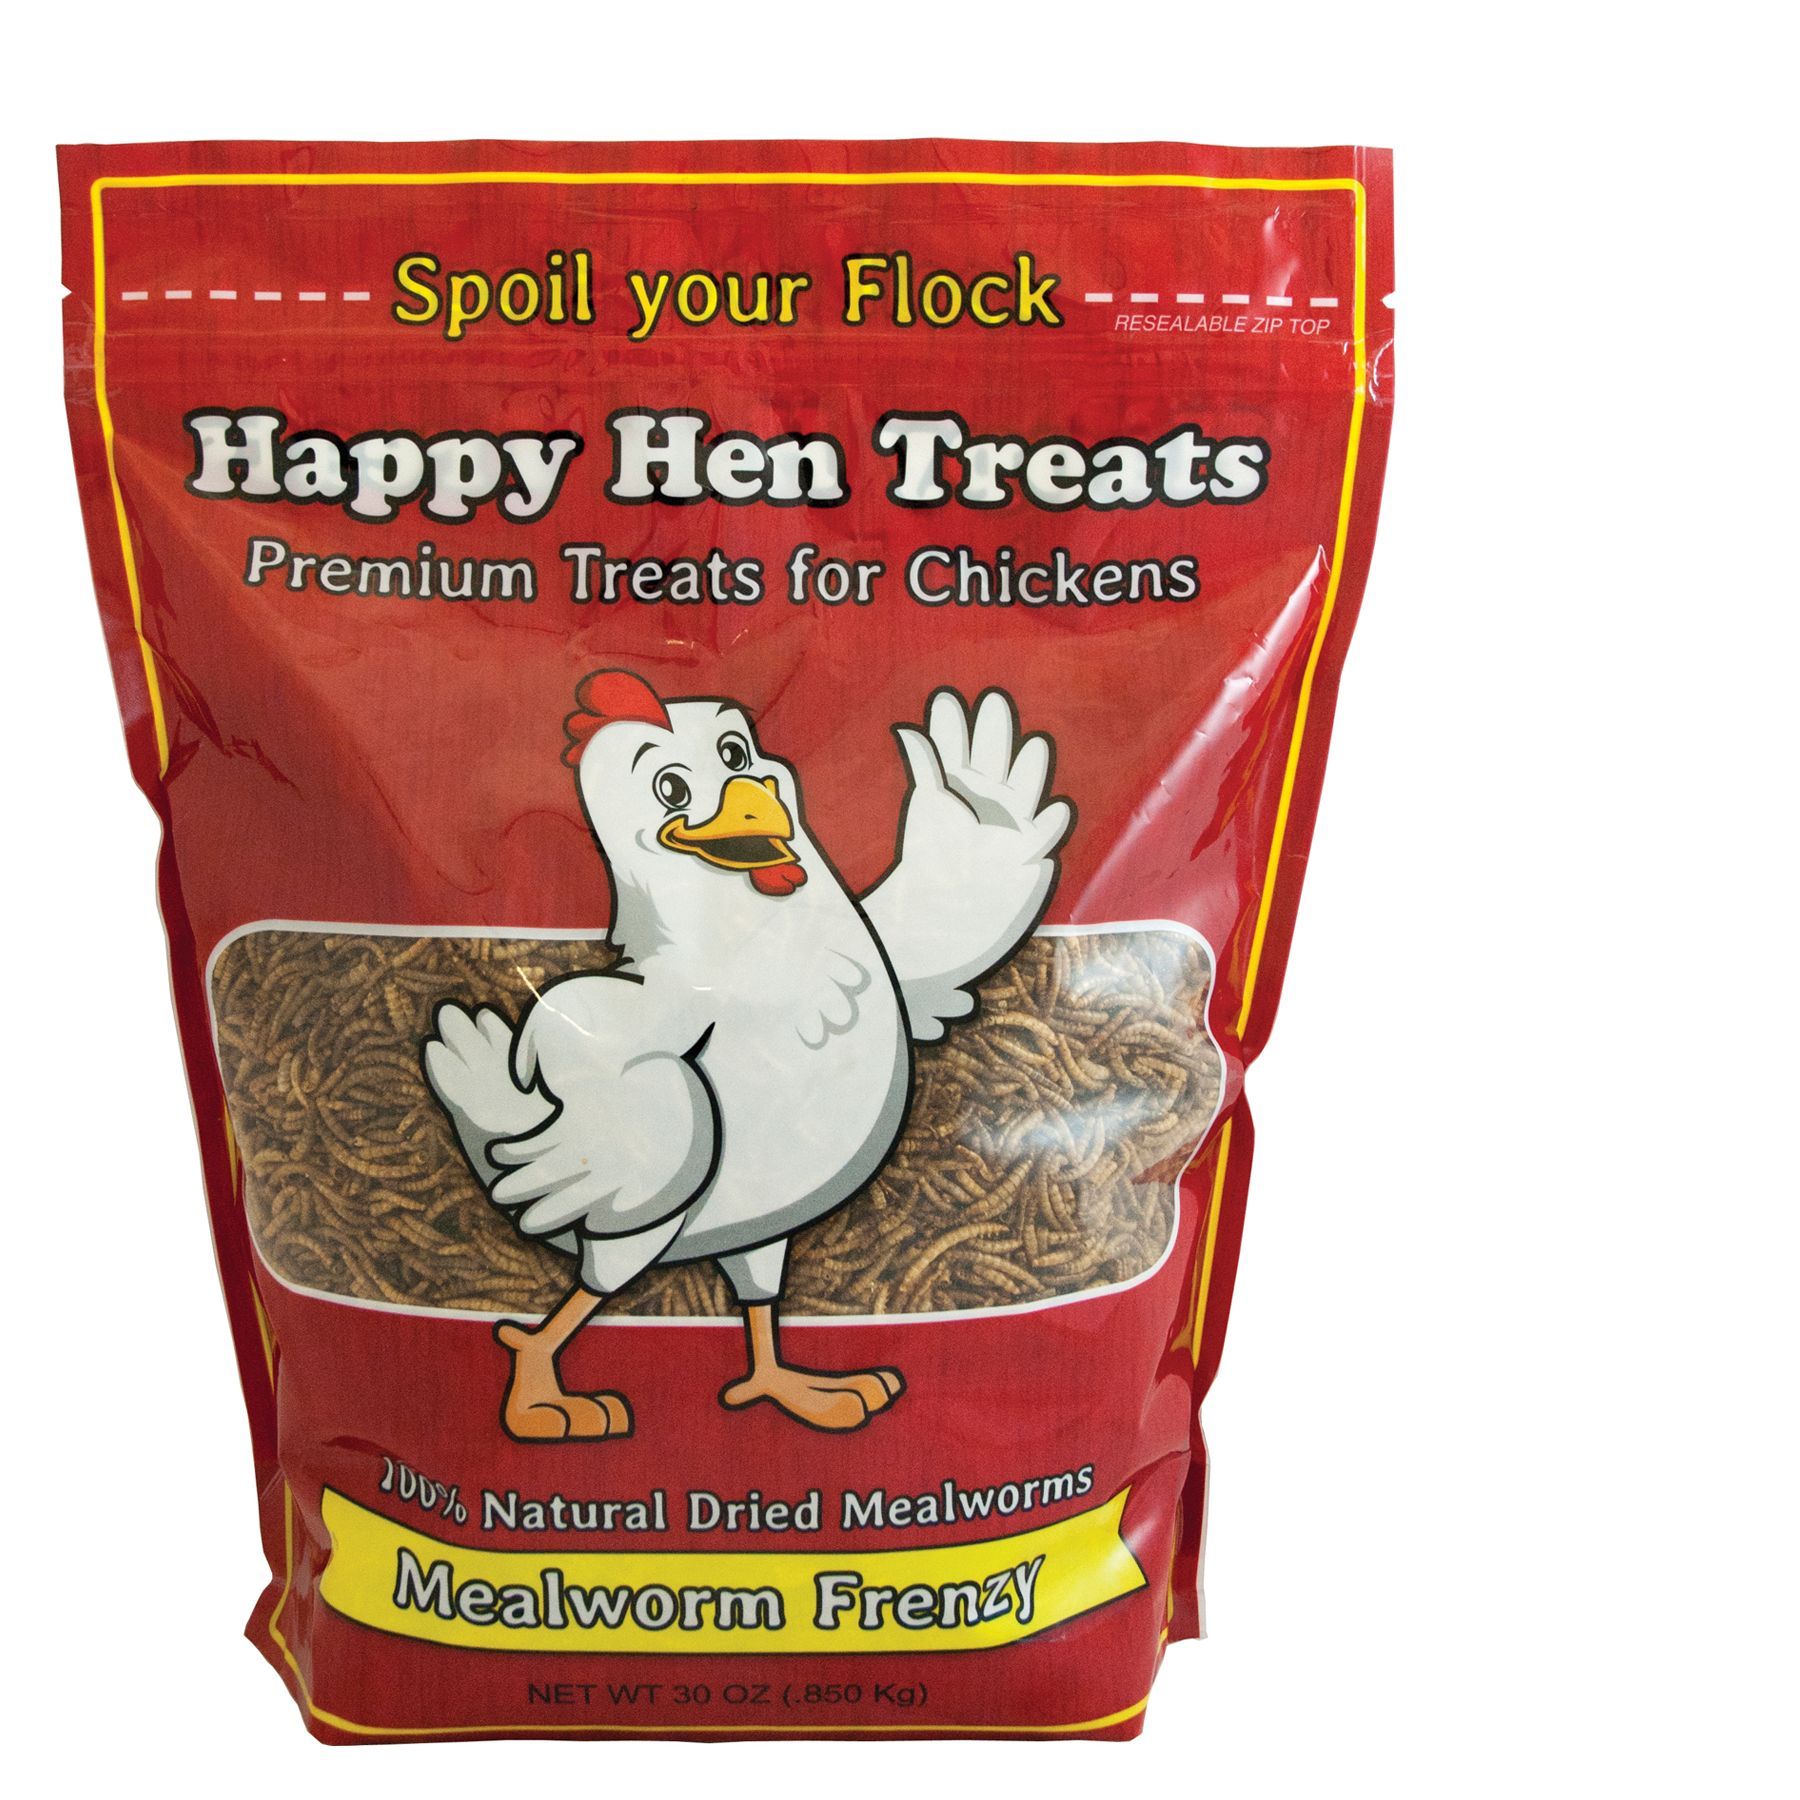 Happy Hen Treats Mealworm Frenzy Chicken Treats Size 30 Oz